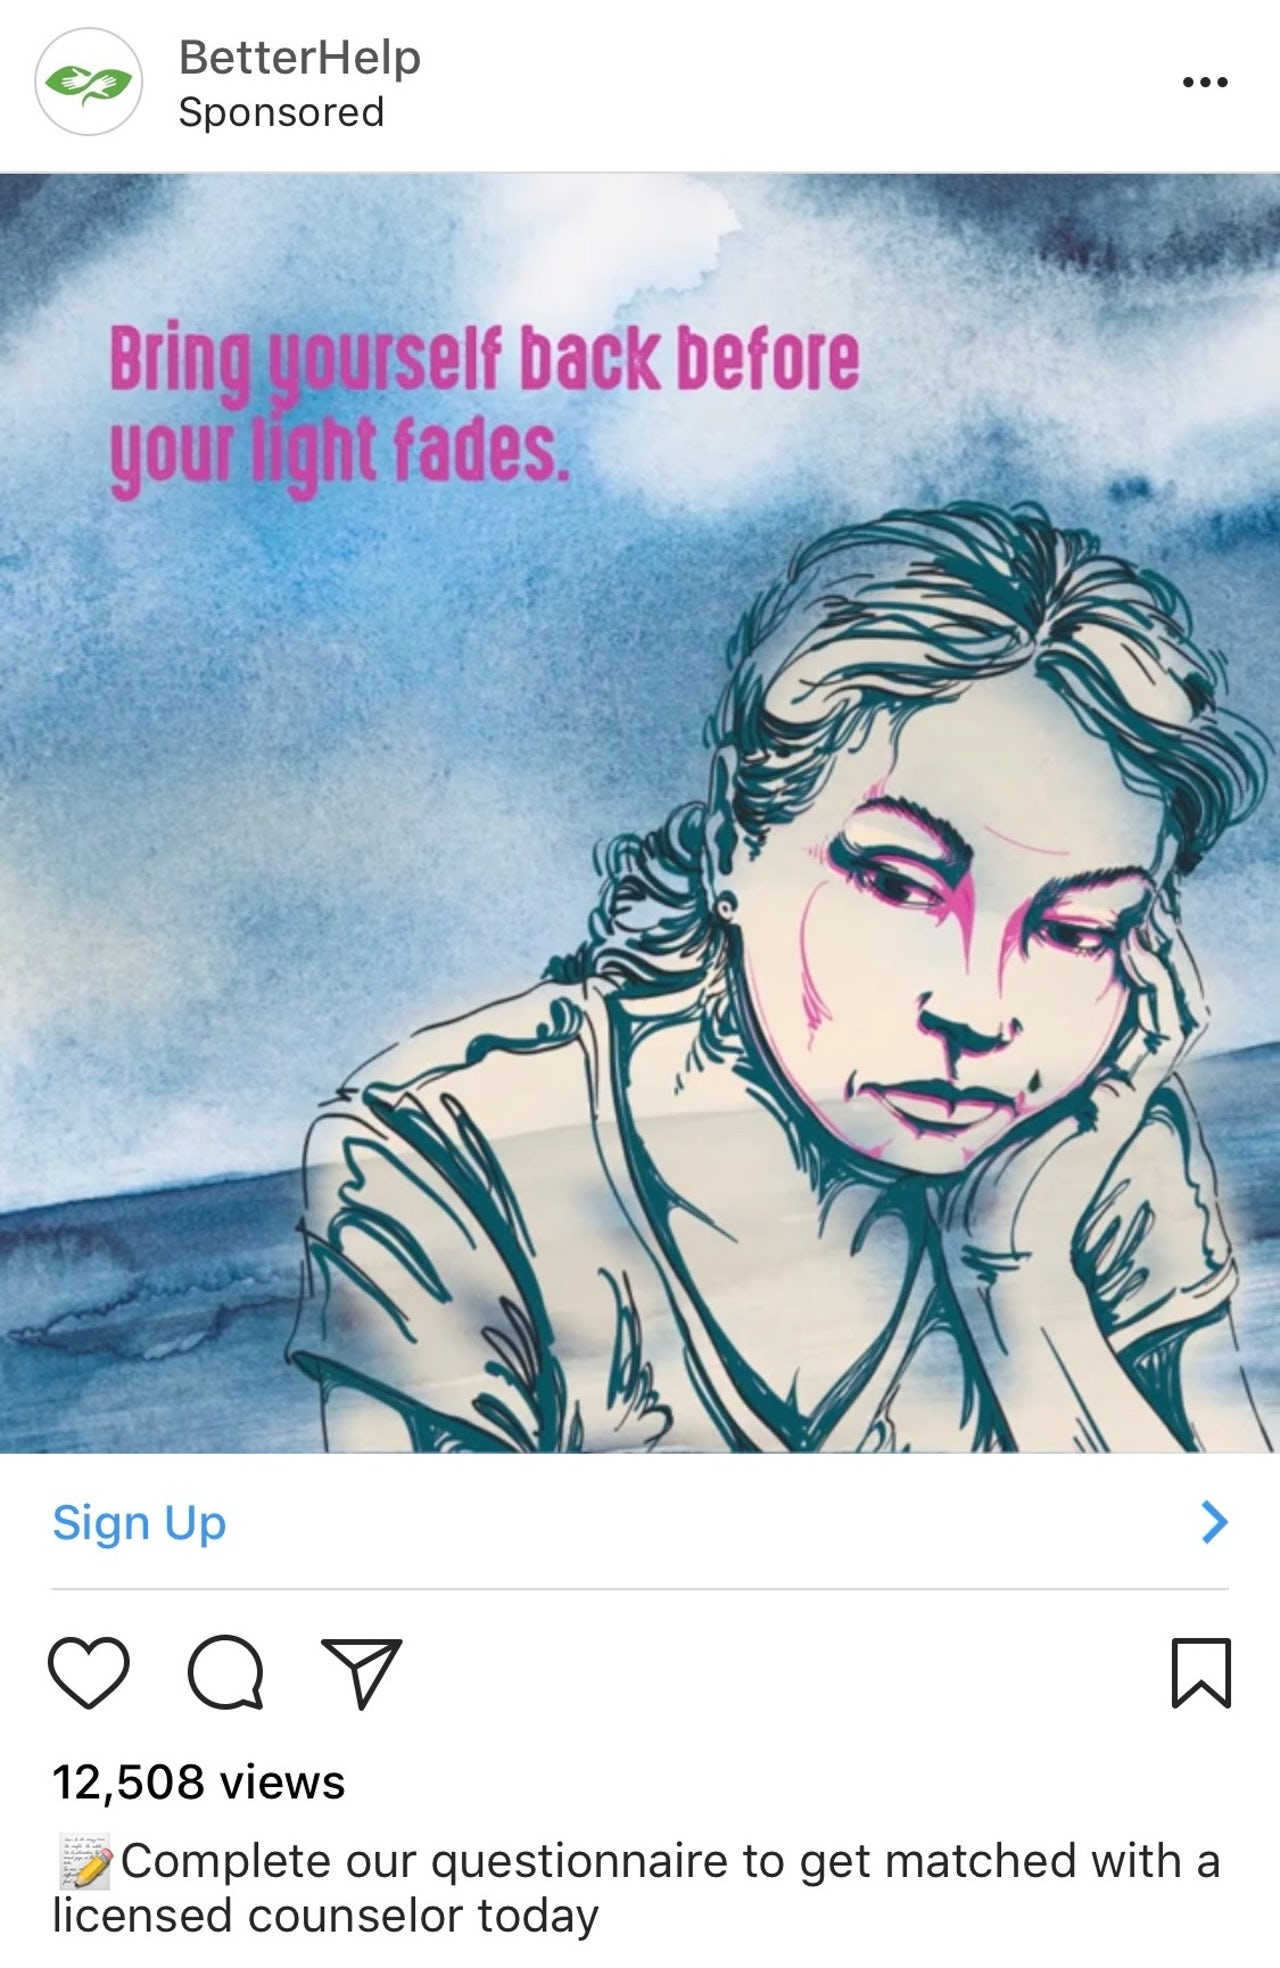 An ad for BetterHelp on Instagram.